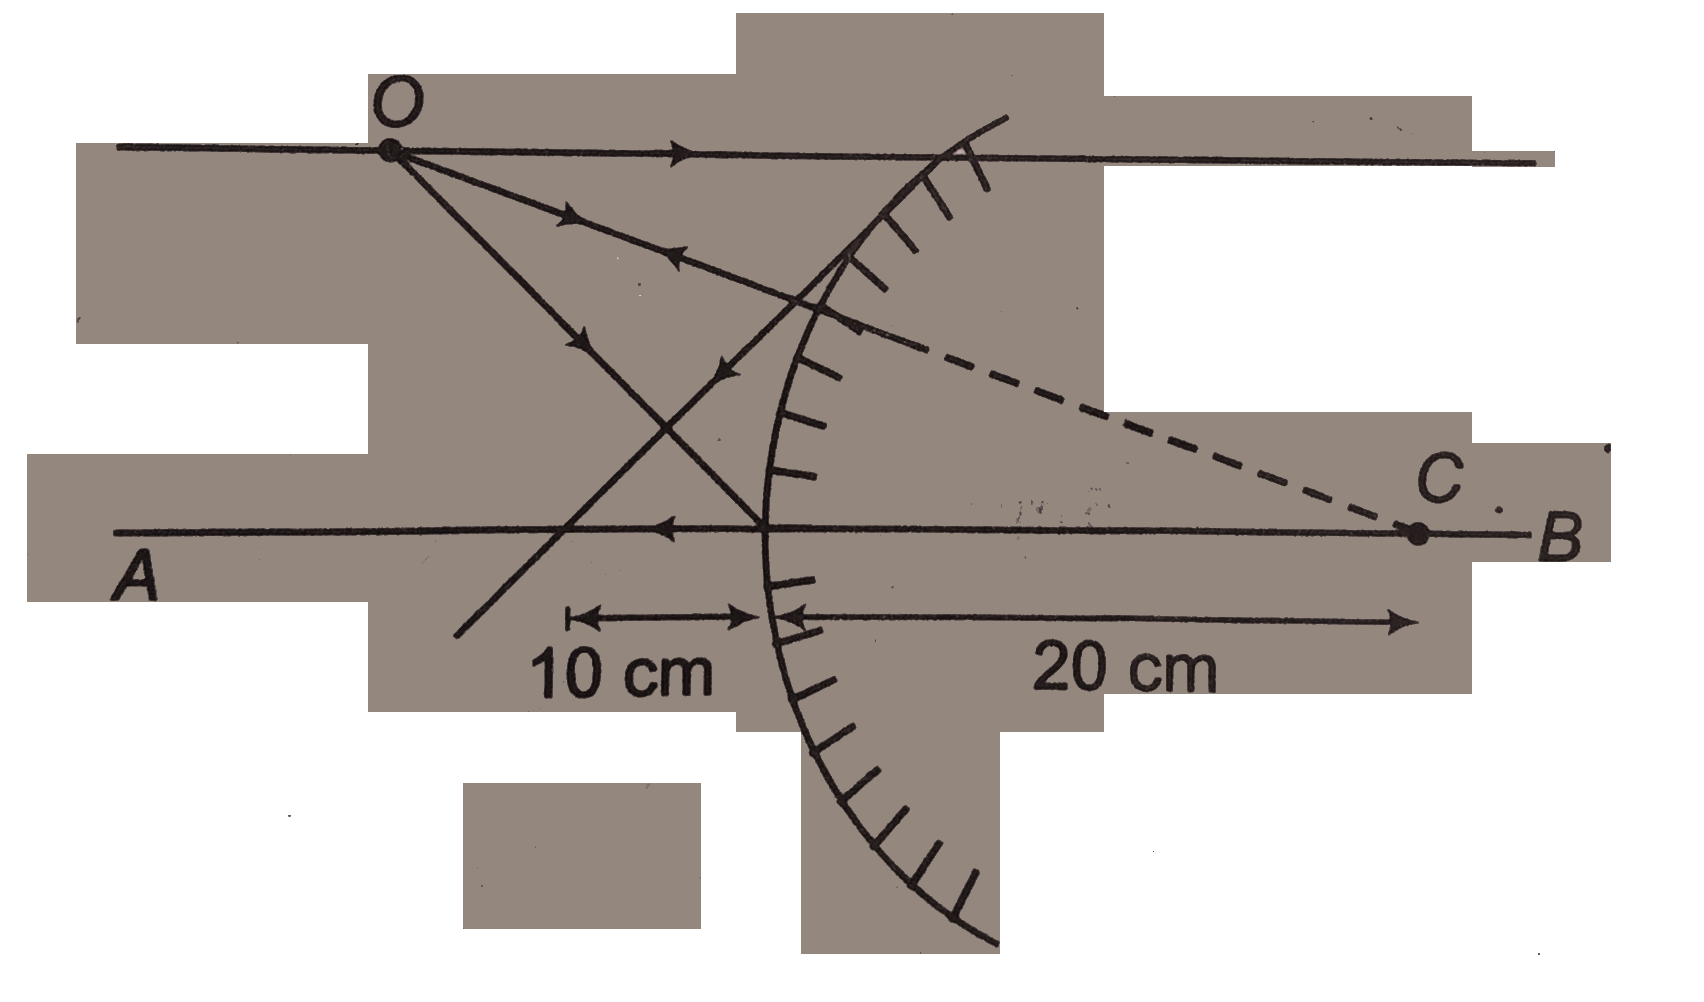 Concave Mirror Ray Diagram A Convex Mirror Of Radius Of Curvature 20 Cm Is Shown In Figure An